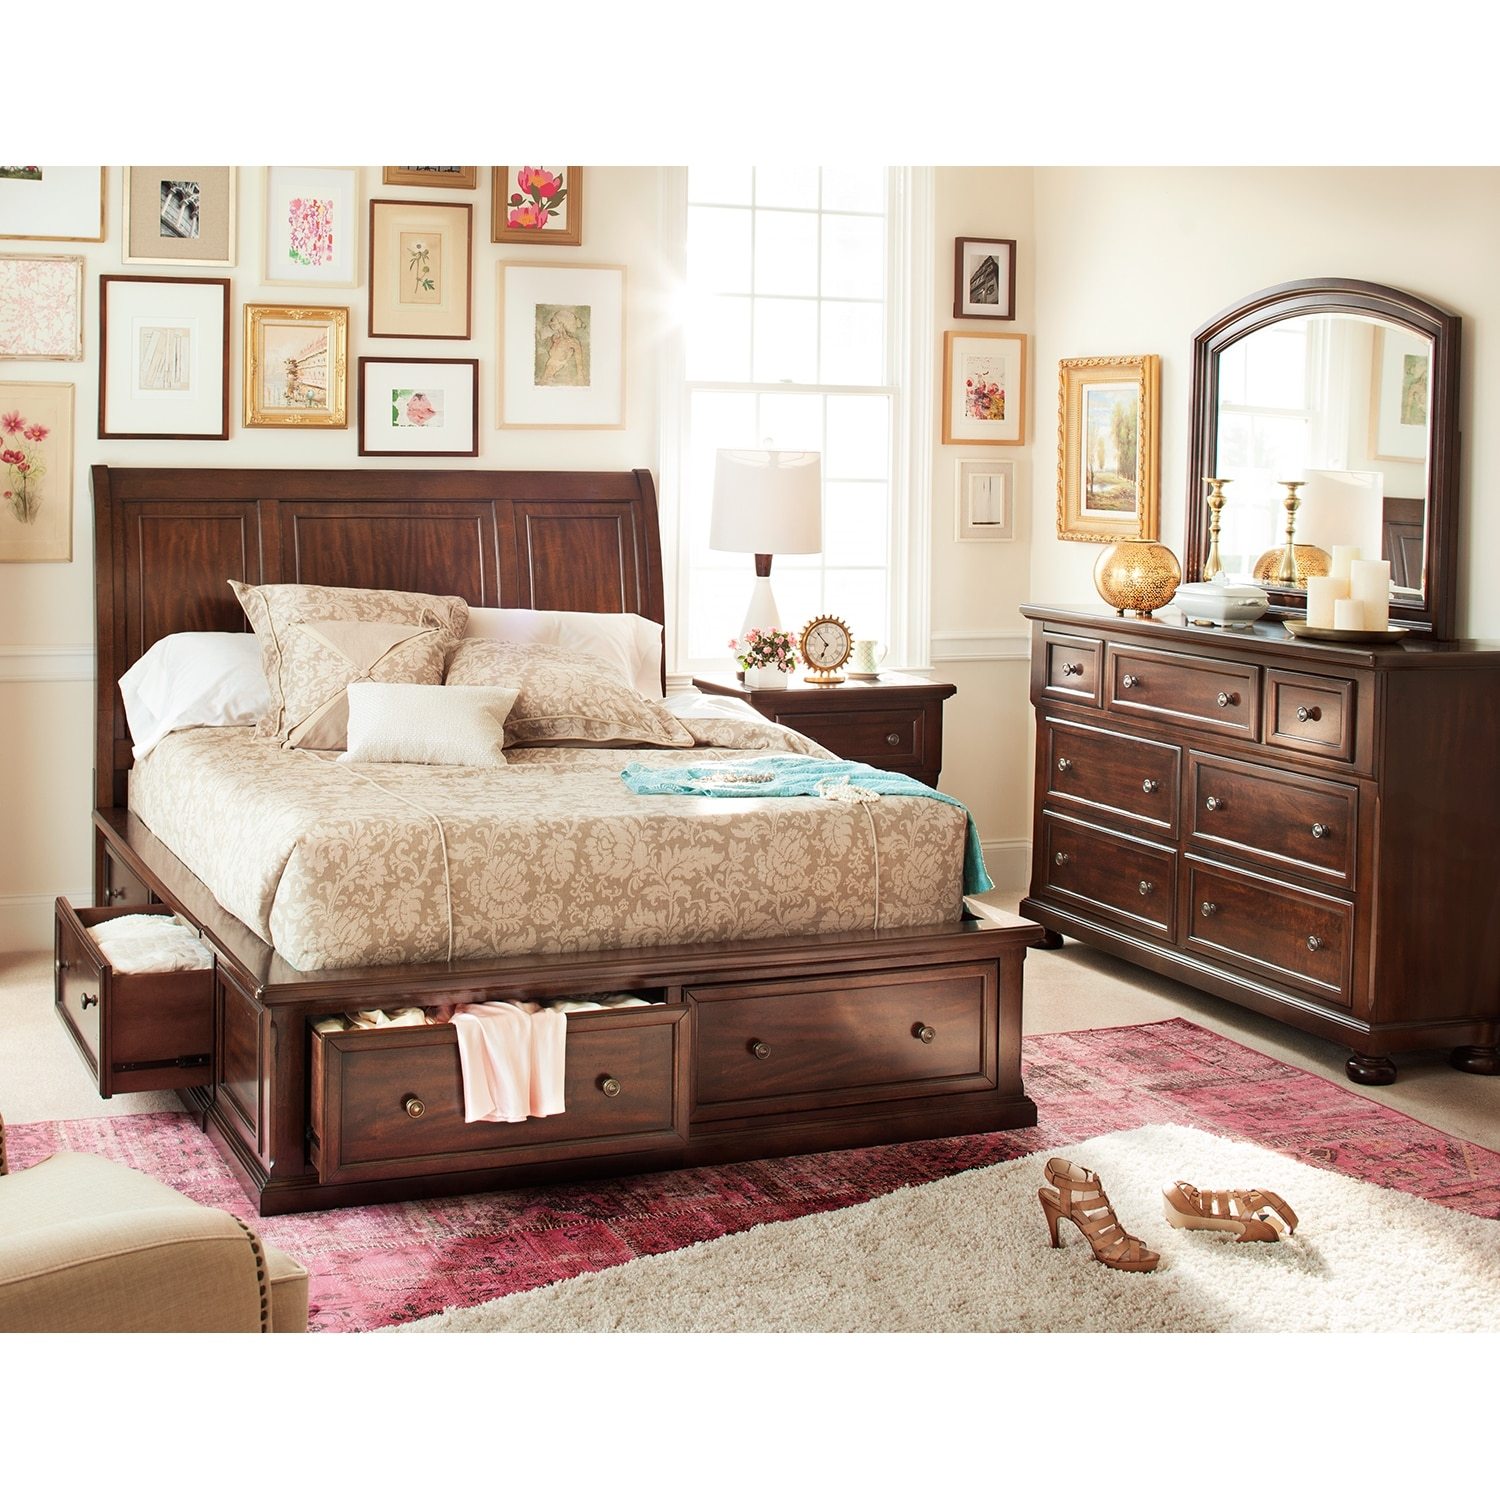 Storage Bed Plans Ideas